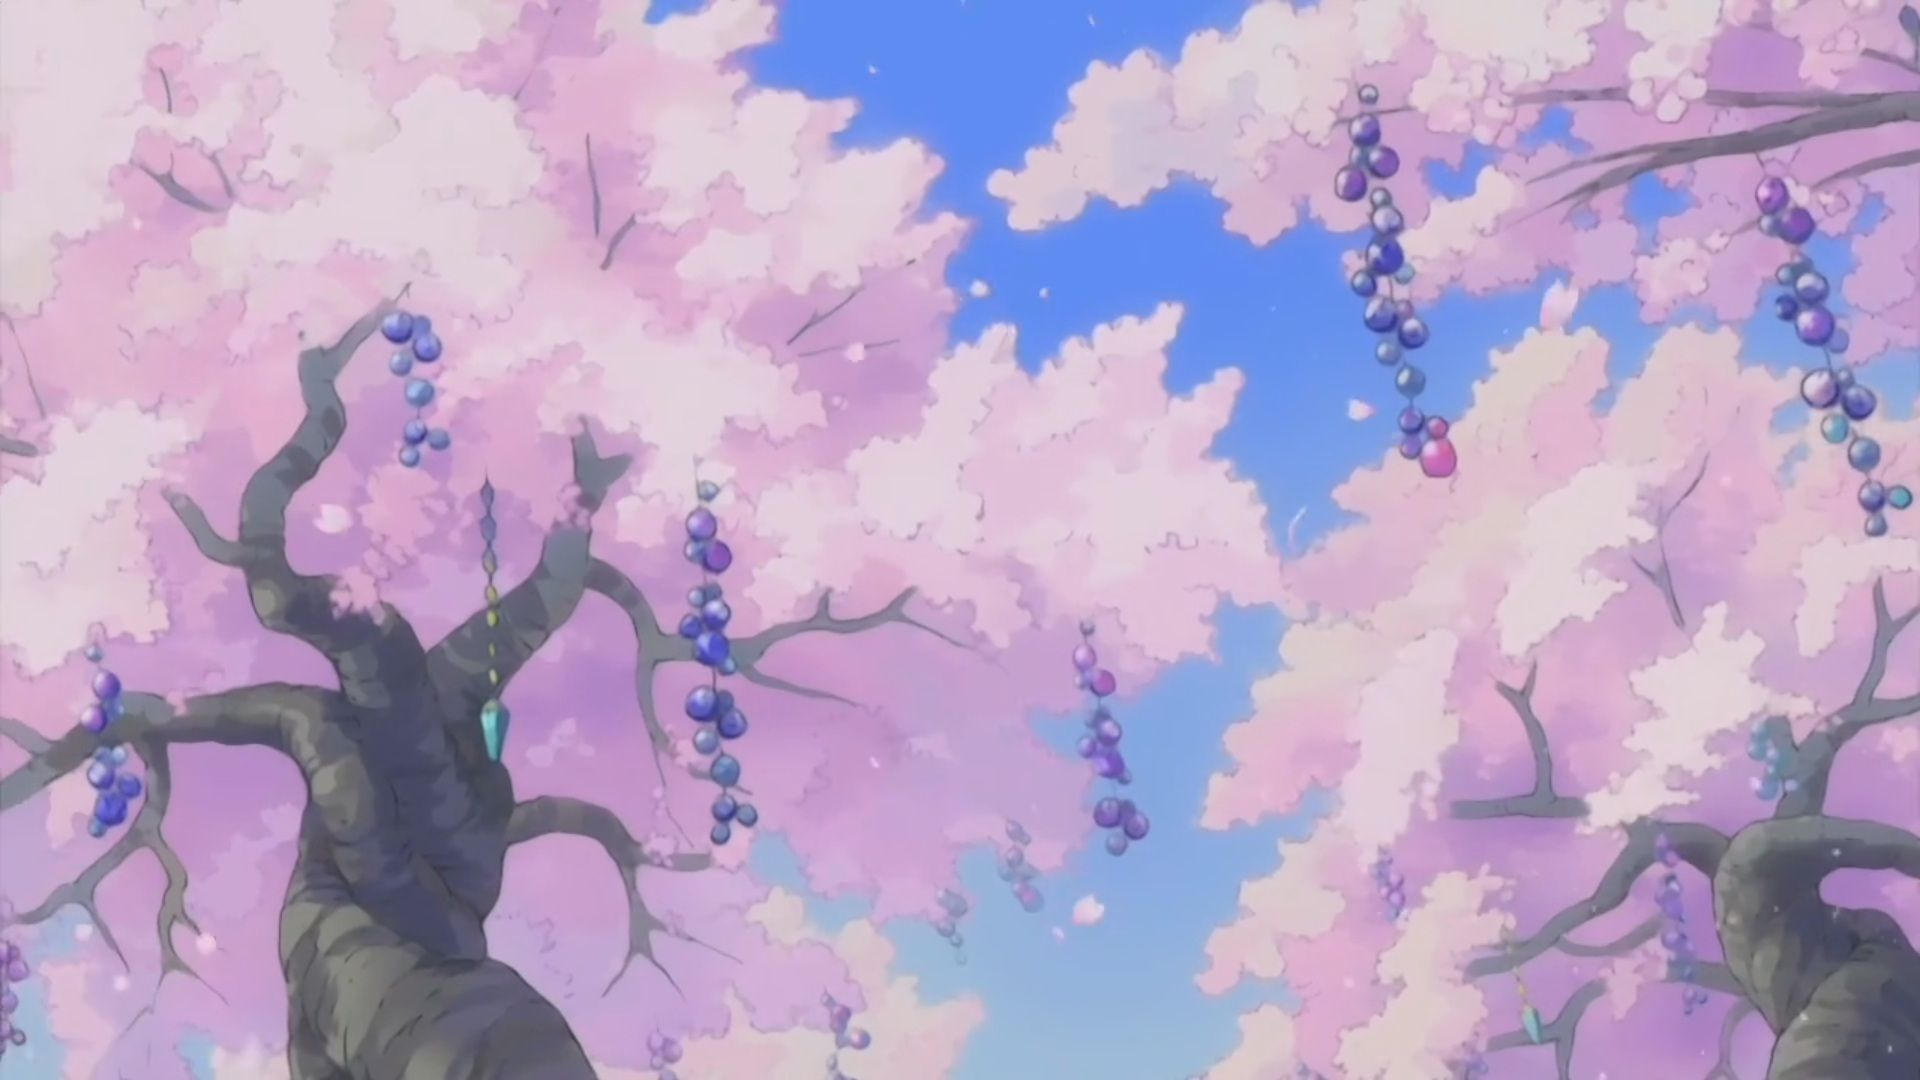 My Collection Of Anime Sceneries Anime Scenery Wallpaper Anime Scenery Scenery Wallpaper Anime mac wallpaper hd